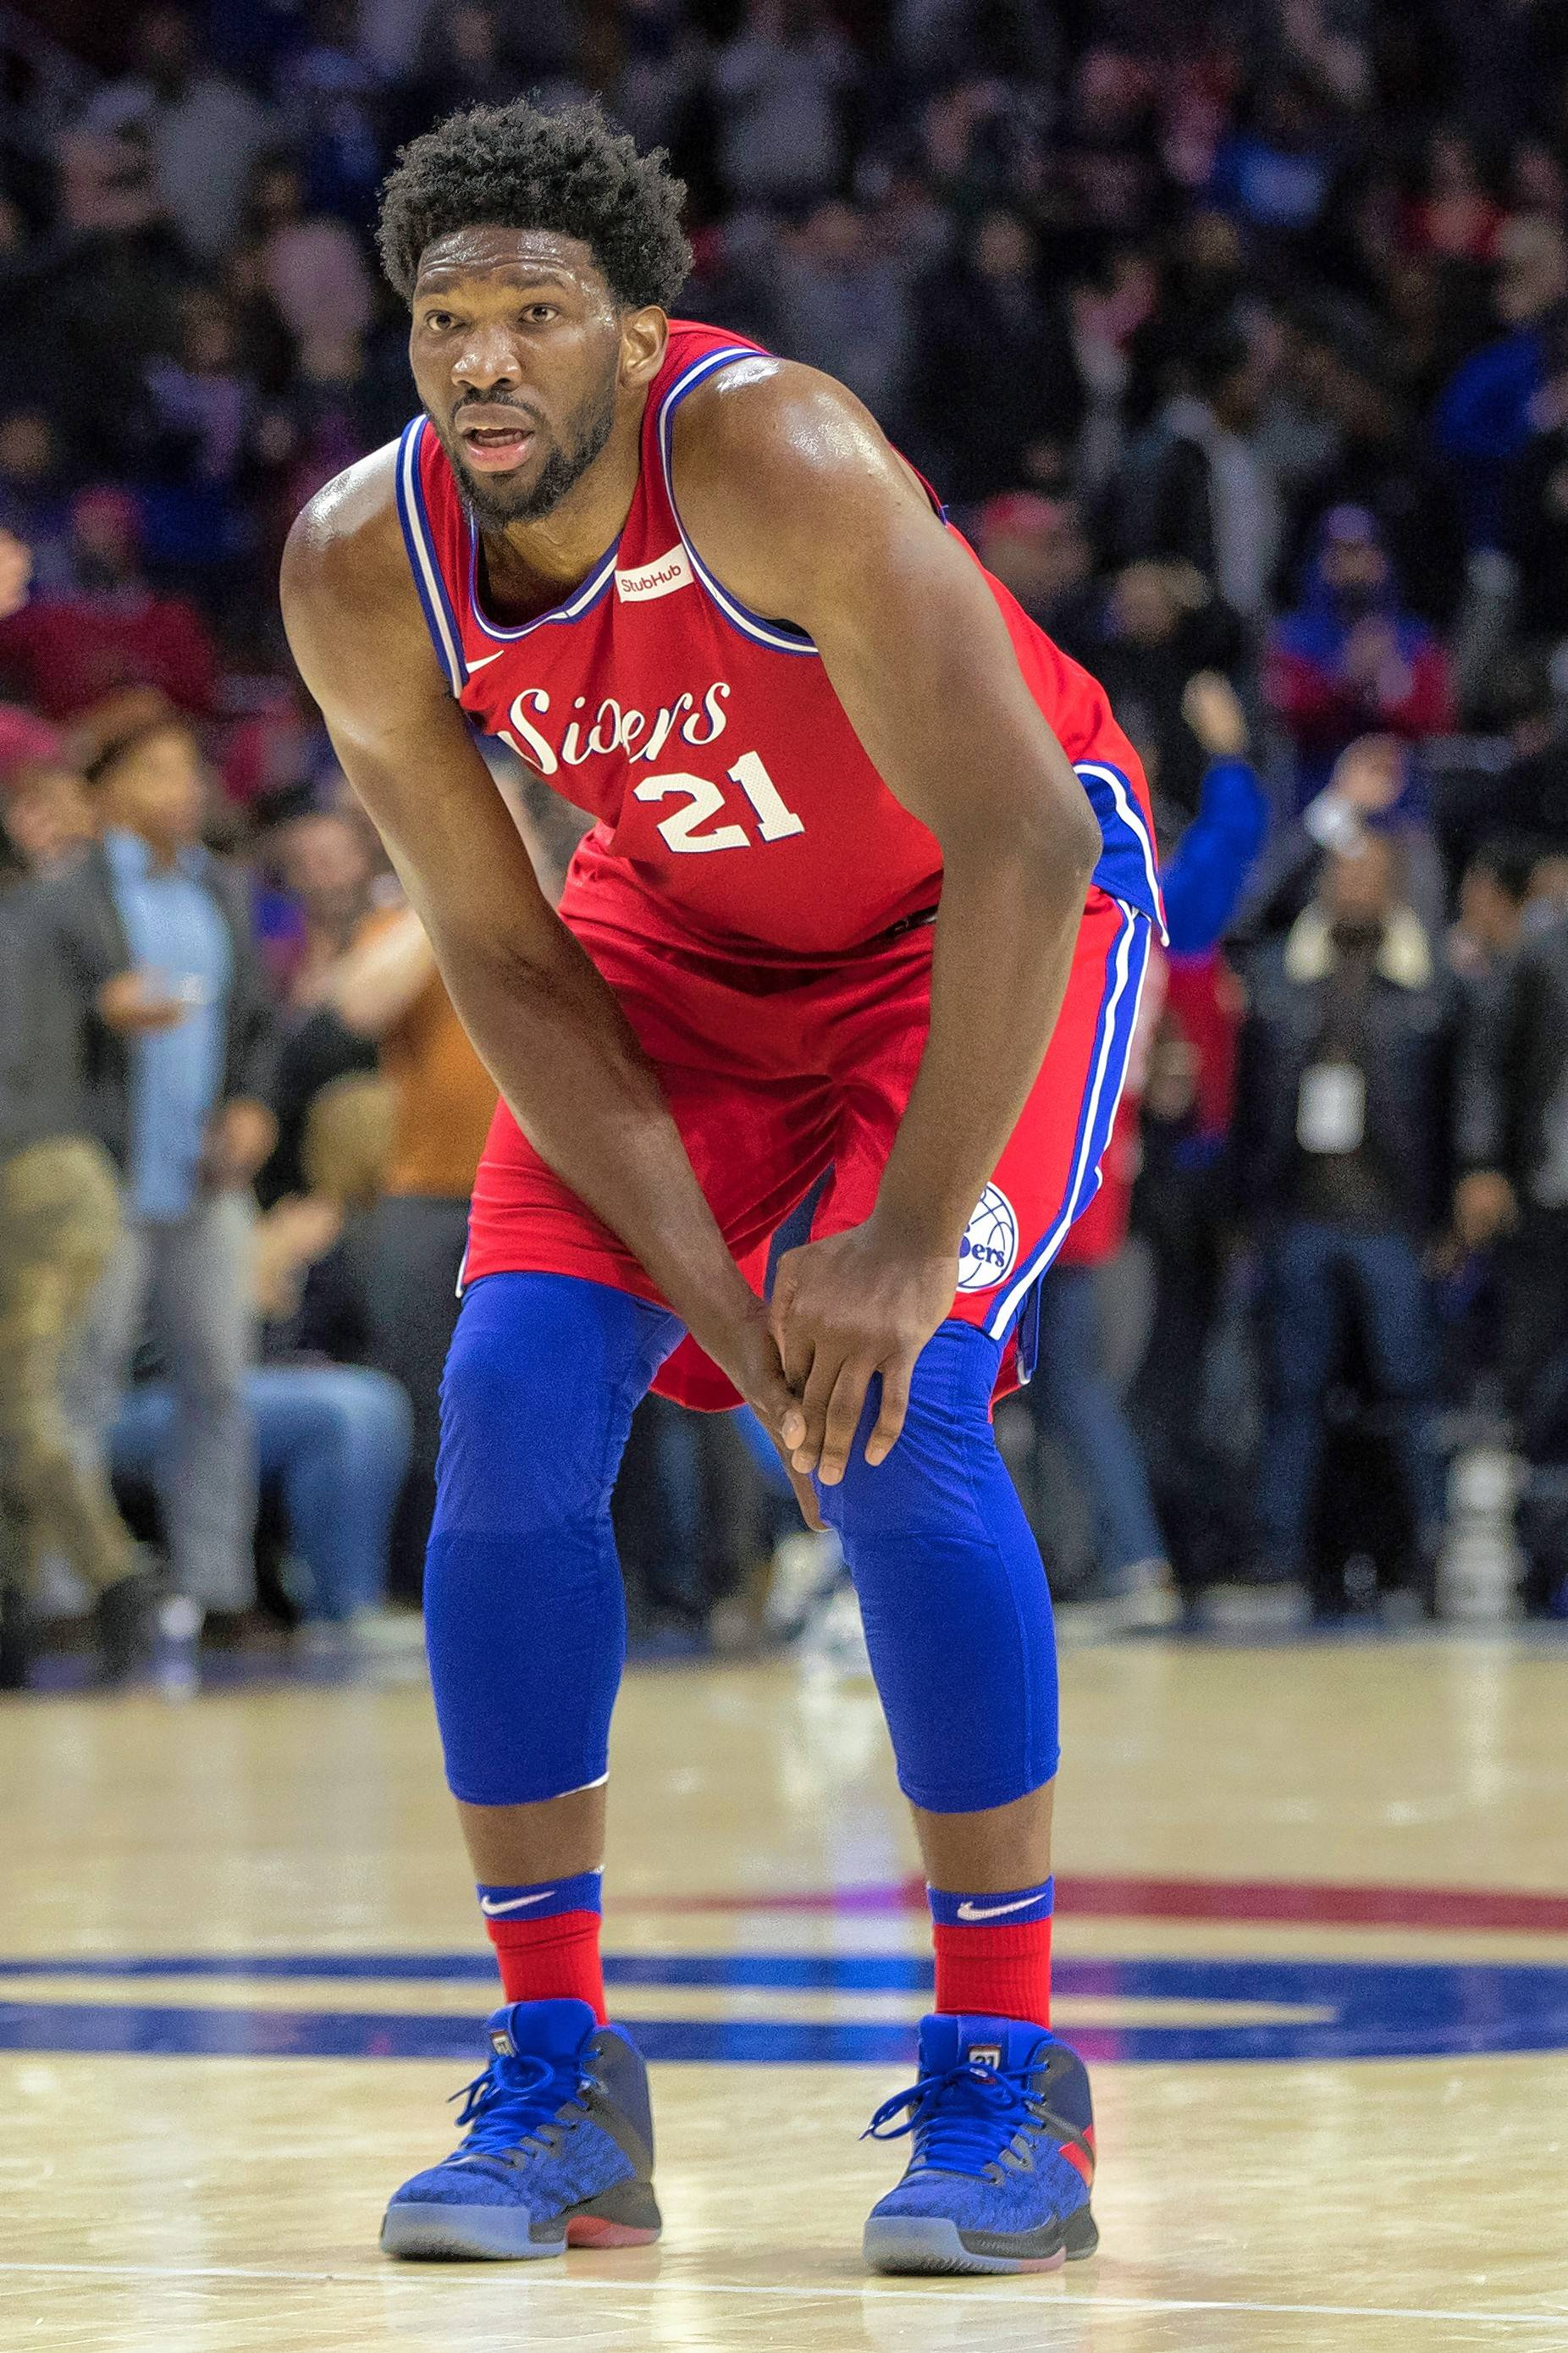 The Philadelphia 76ers announced Sunday centrer Joel Embiid will not play against the Bulls on Monday at the United Center. Embiid has yet to face the Bulls in his NBA career having missed all games between the teams last year.